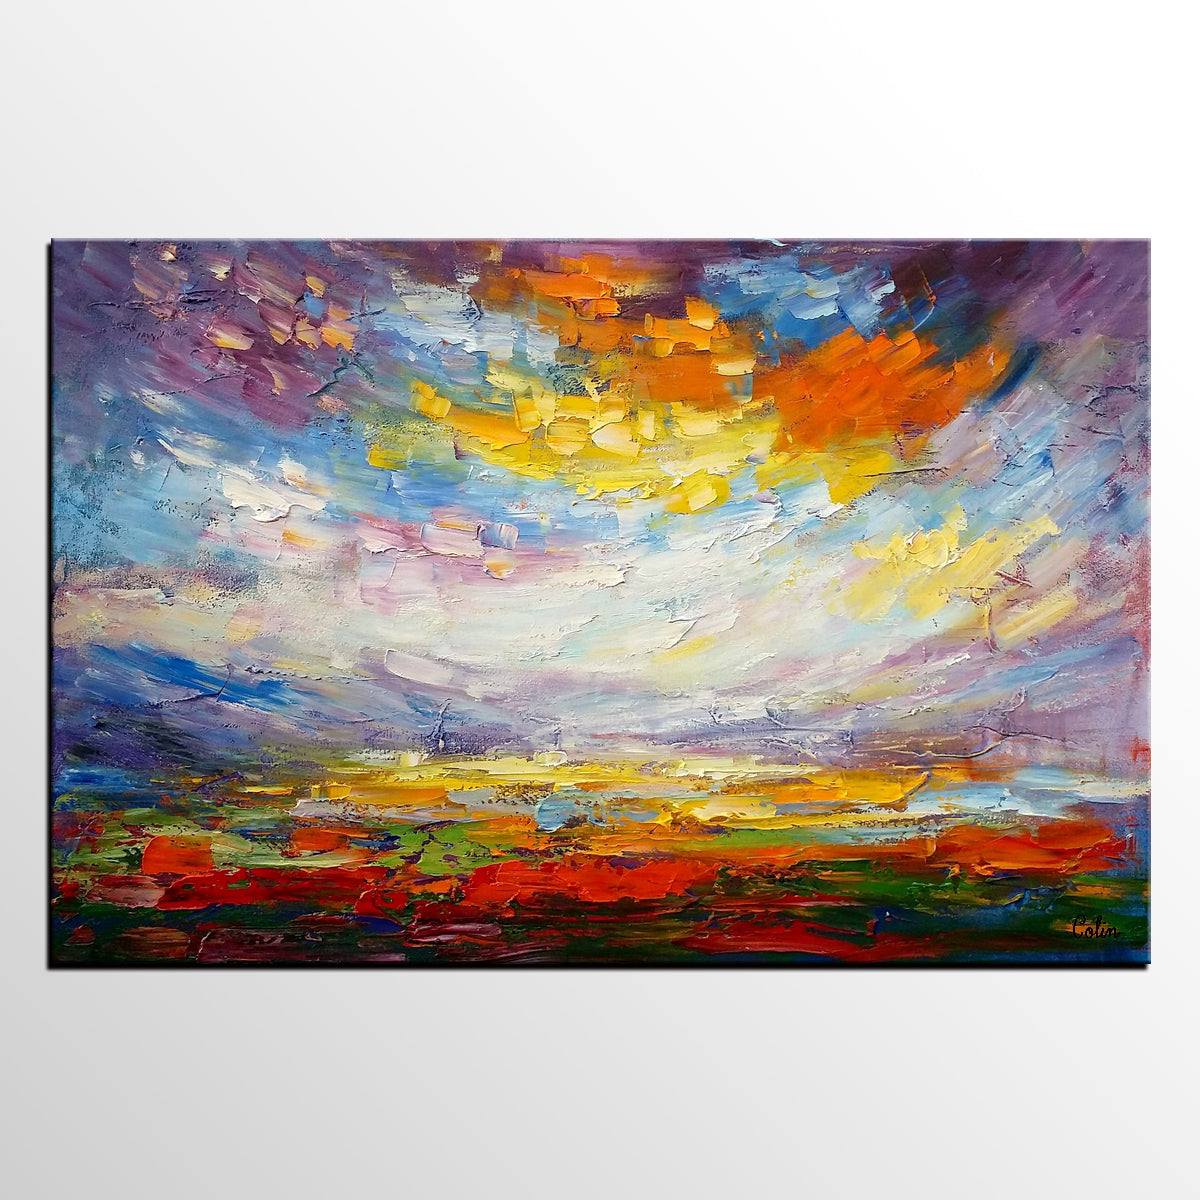 Landscape Painting, Abstract Oil Painting, Canvas Art, Wall Art, Canvas Painting